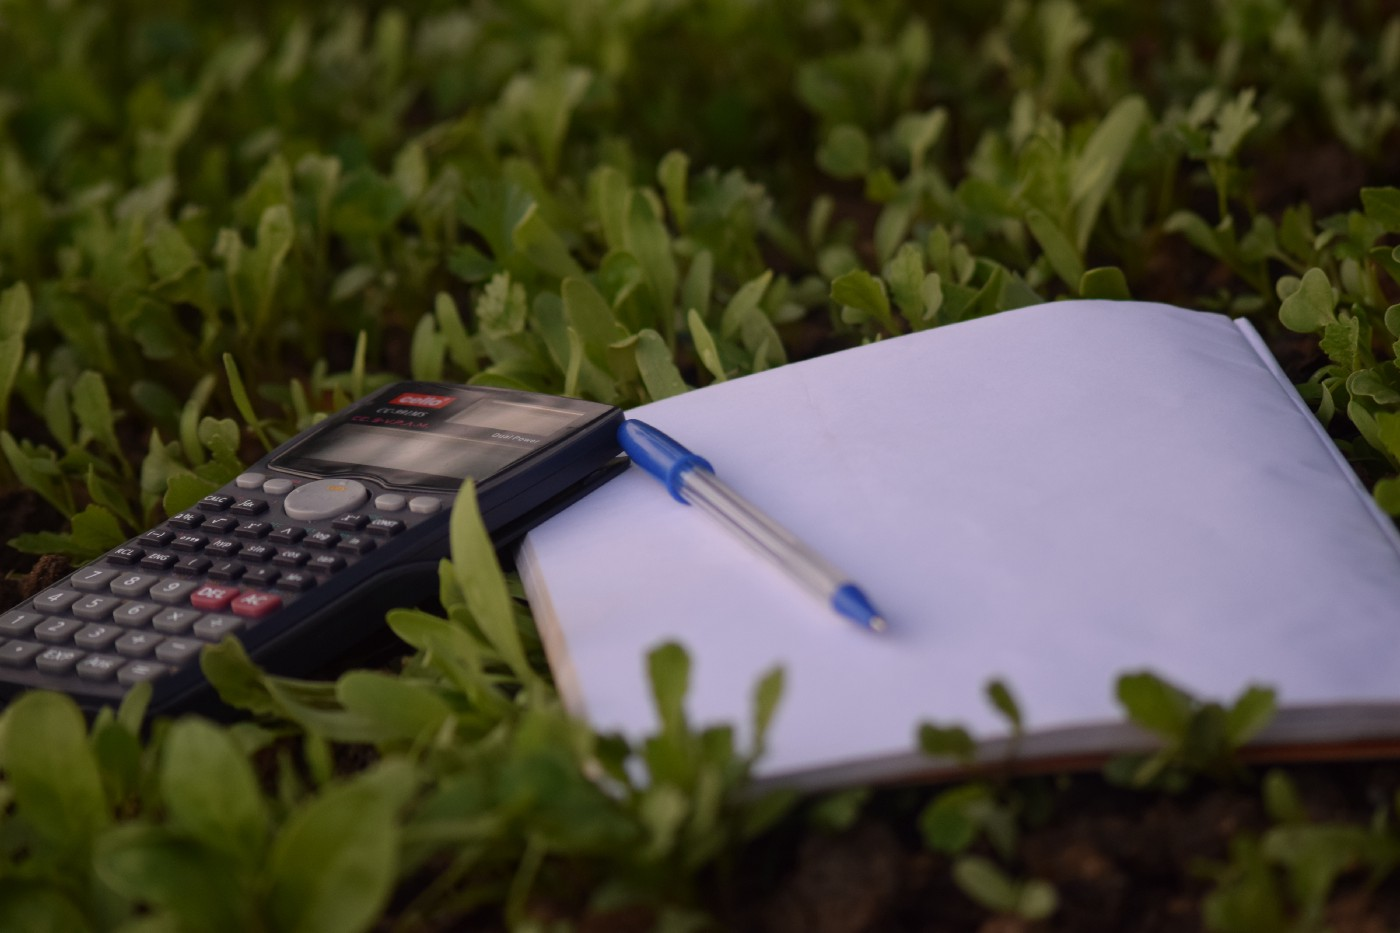 A calculator, pen & paper laying on the green grass.